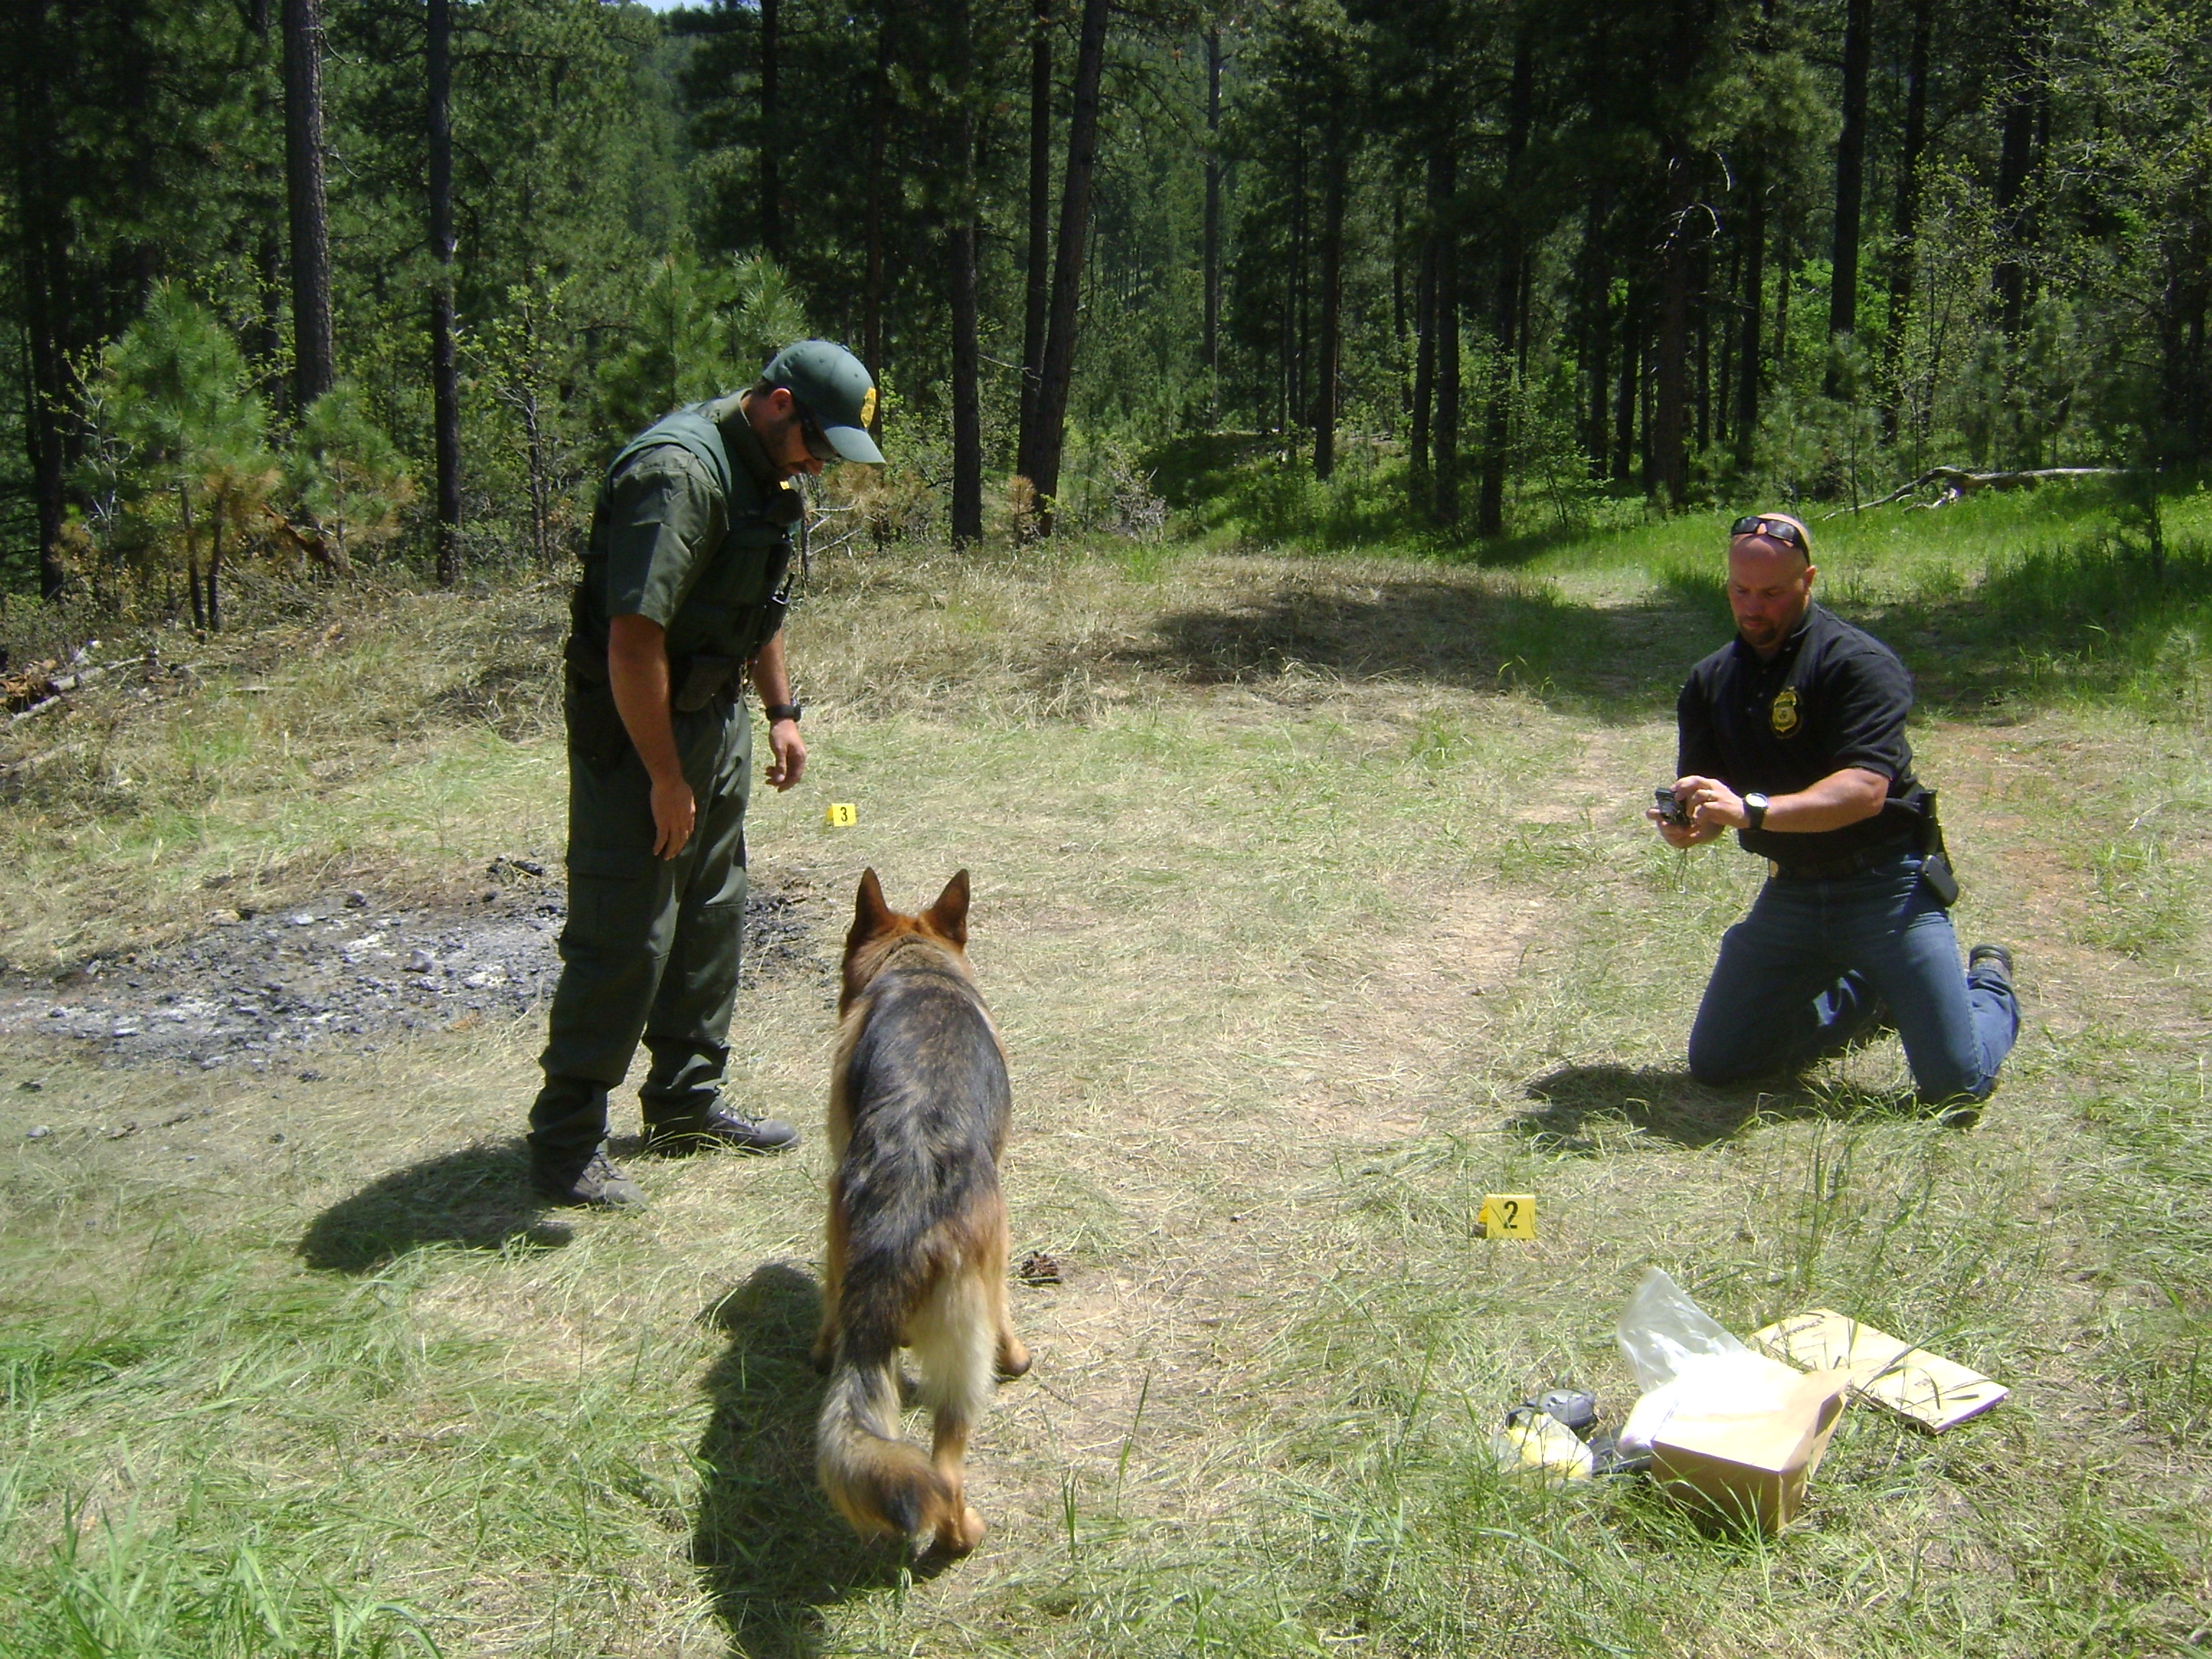 Special Agent Travis Lunders (right), working on a national forest. (U.S. Forest Service photo)